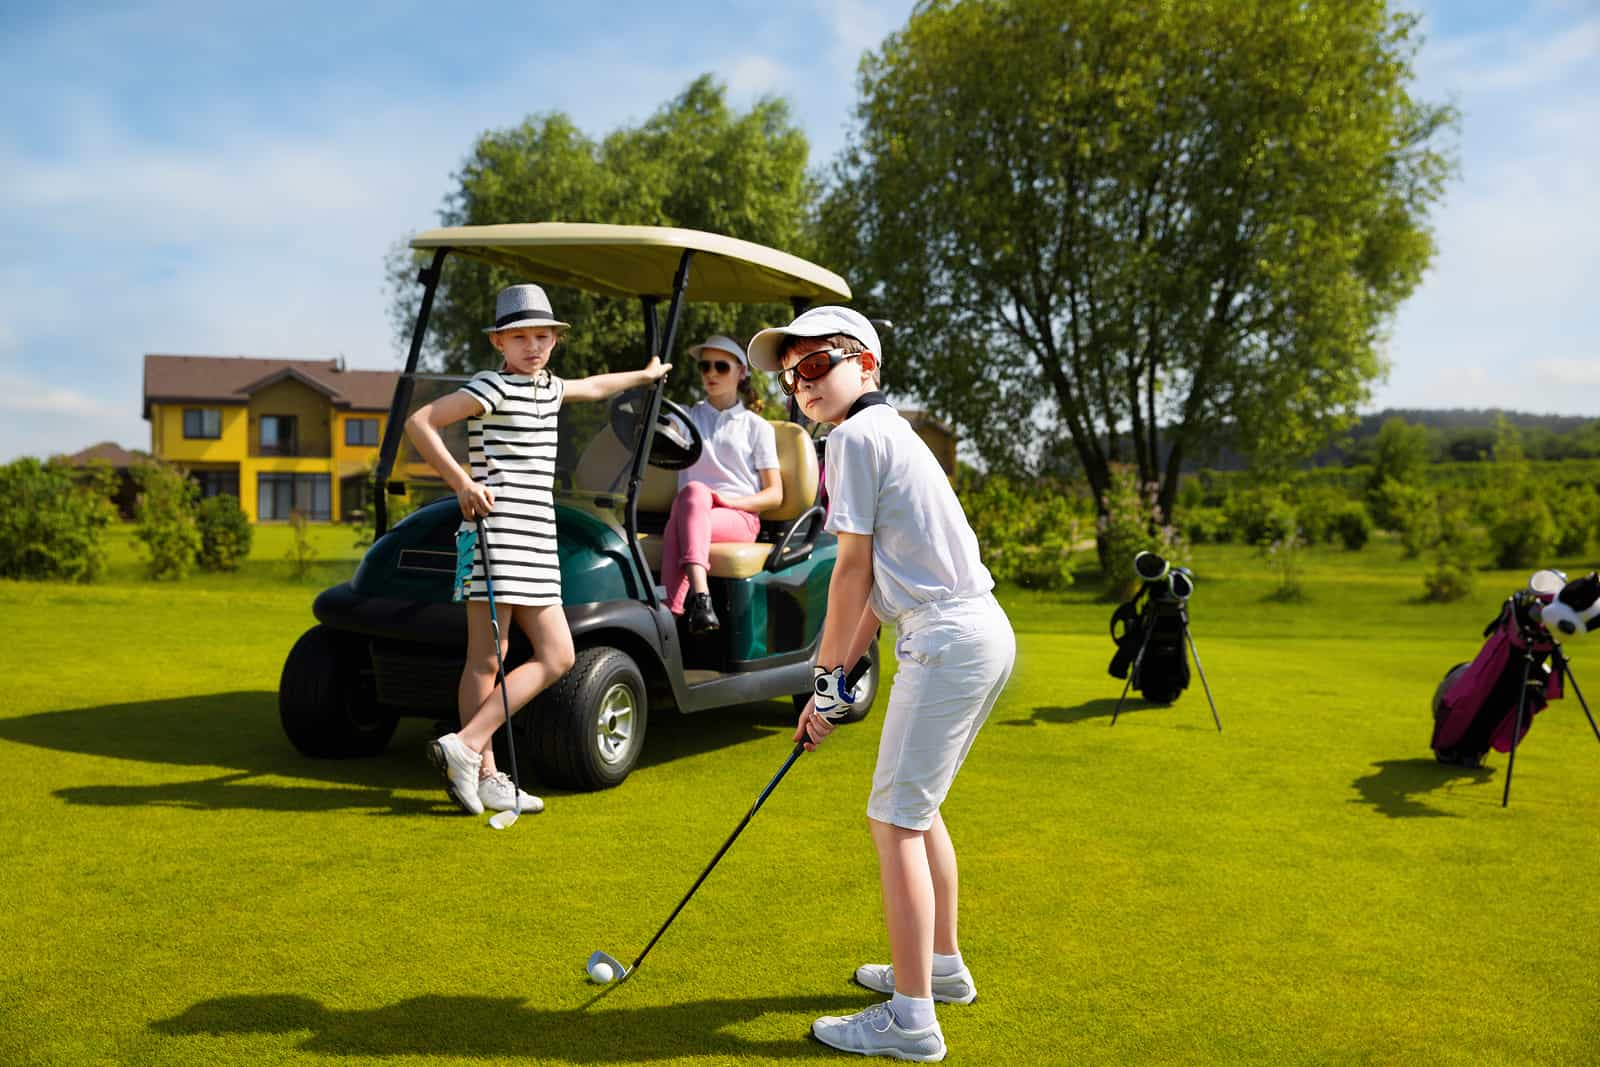 Kids Can Golf at These Golf Courses for FREE with an Adult This Summer